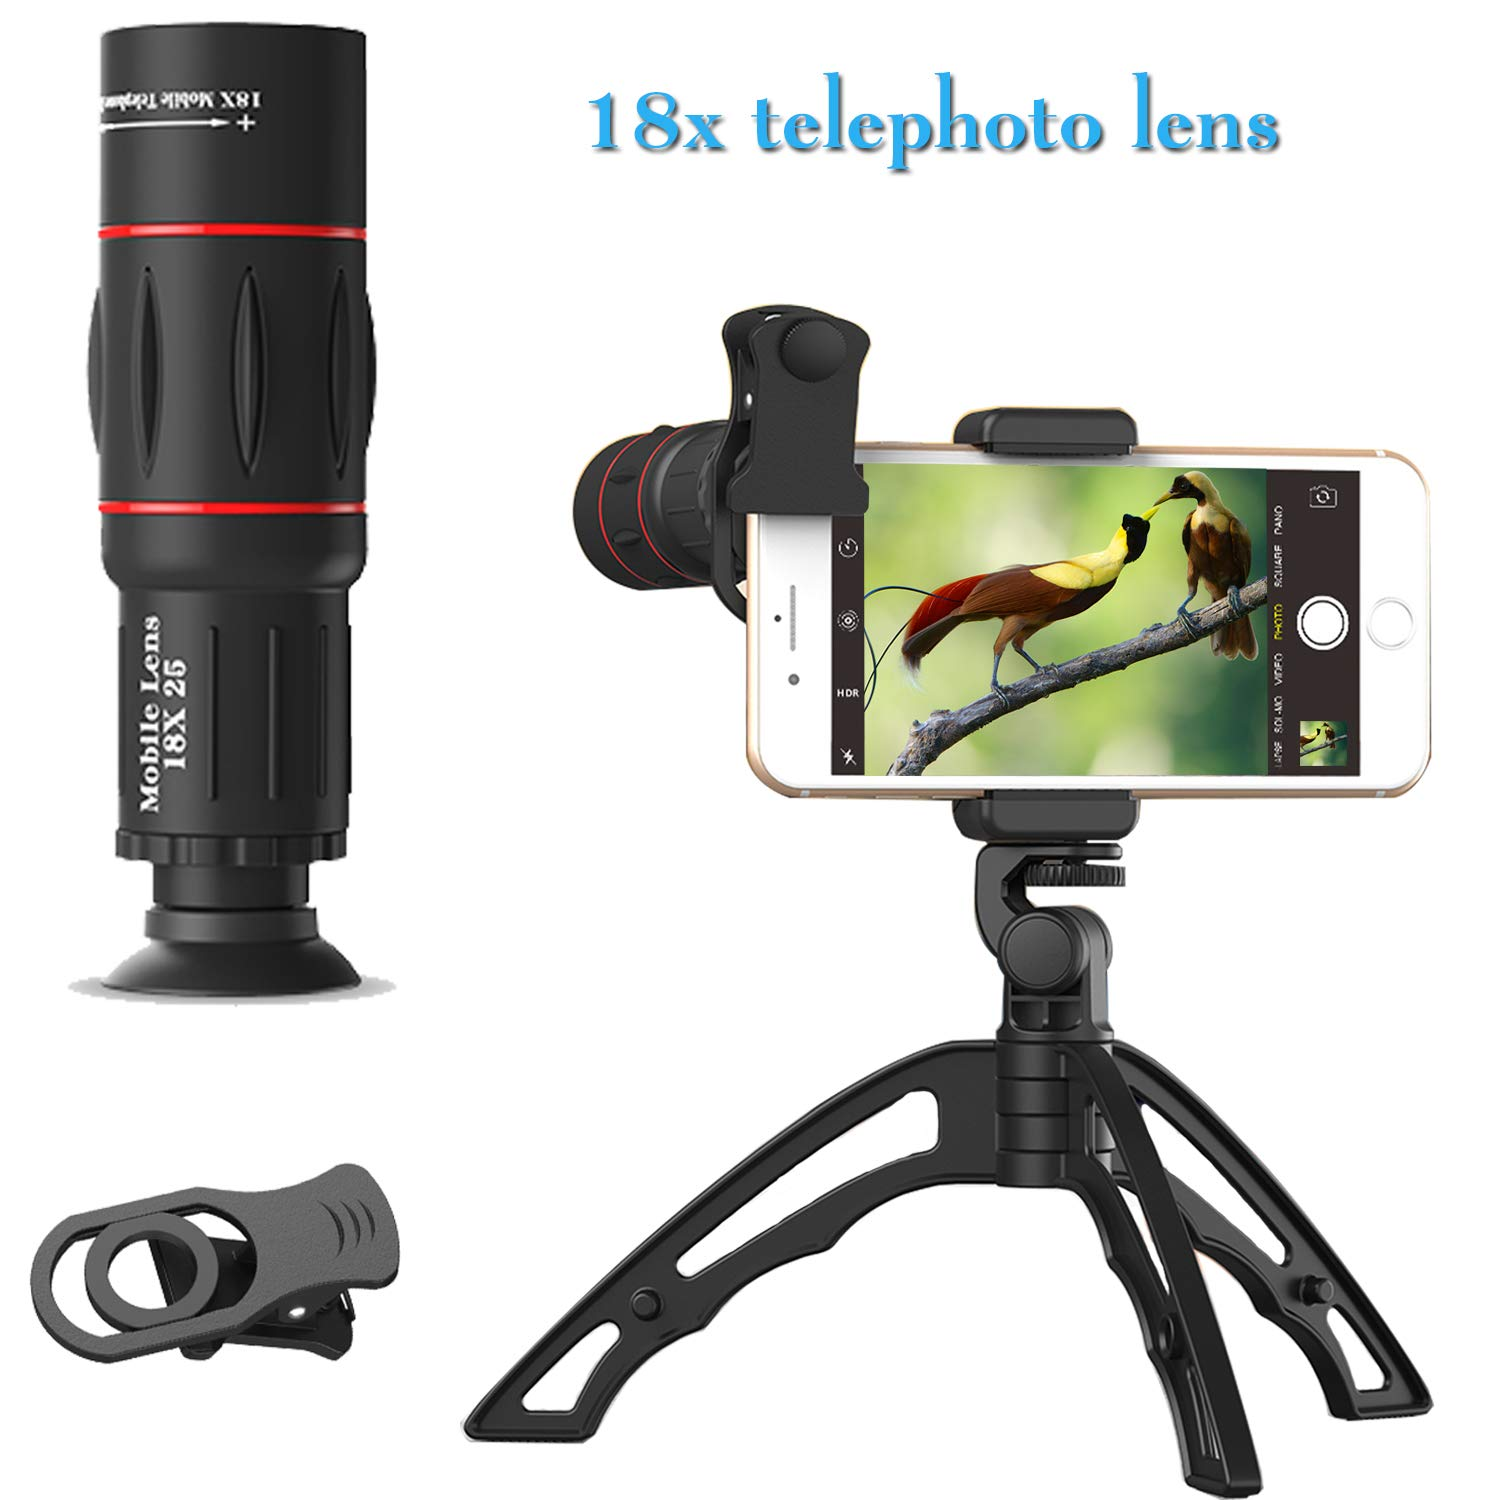 Cell Phone Camera Lens Kit, 18X telephoto Zoom lens Clip On Attachment With Stable Multipurpose Tripod For Iphone 7 8 X 6 S Samsung S8, S9 Most Android Cell Phone